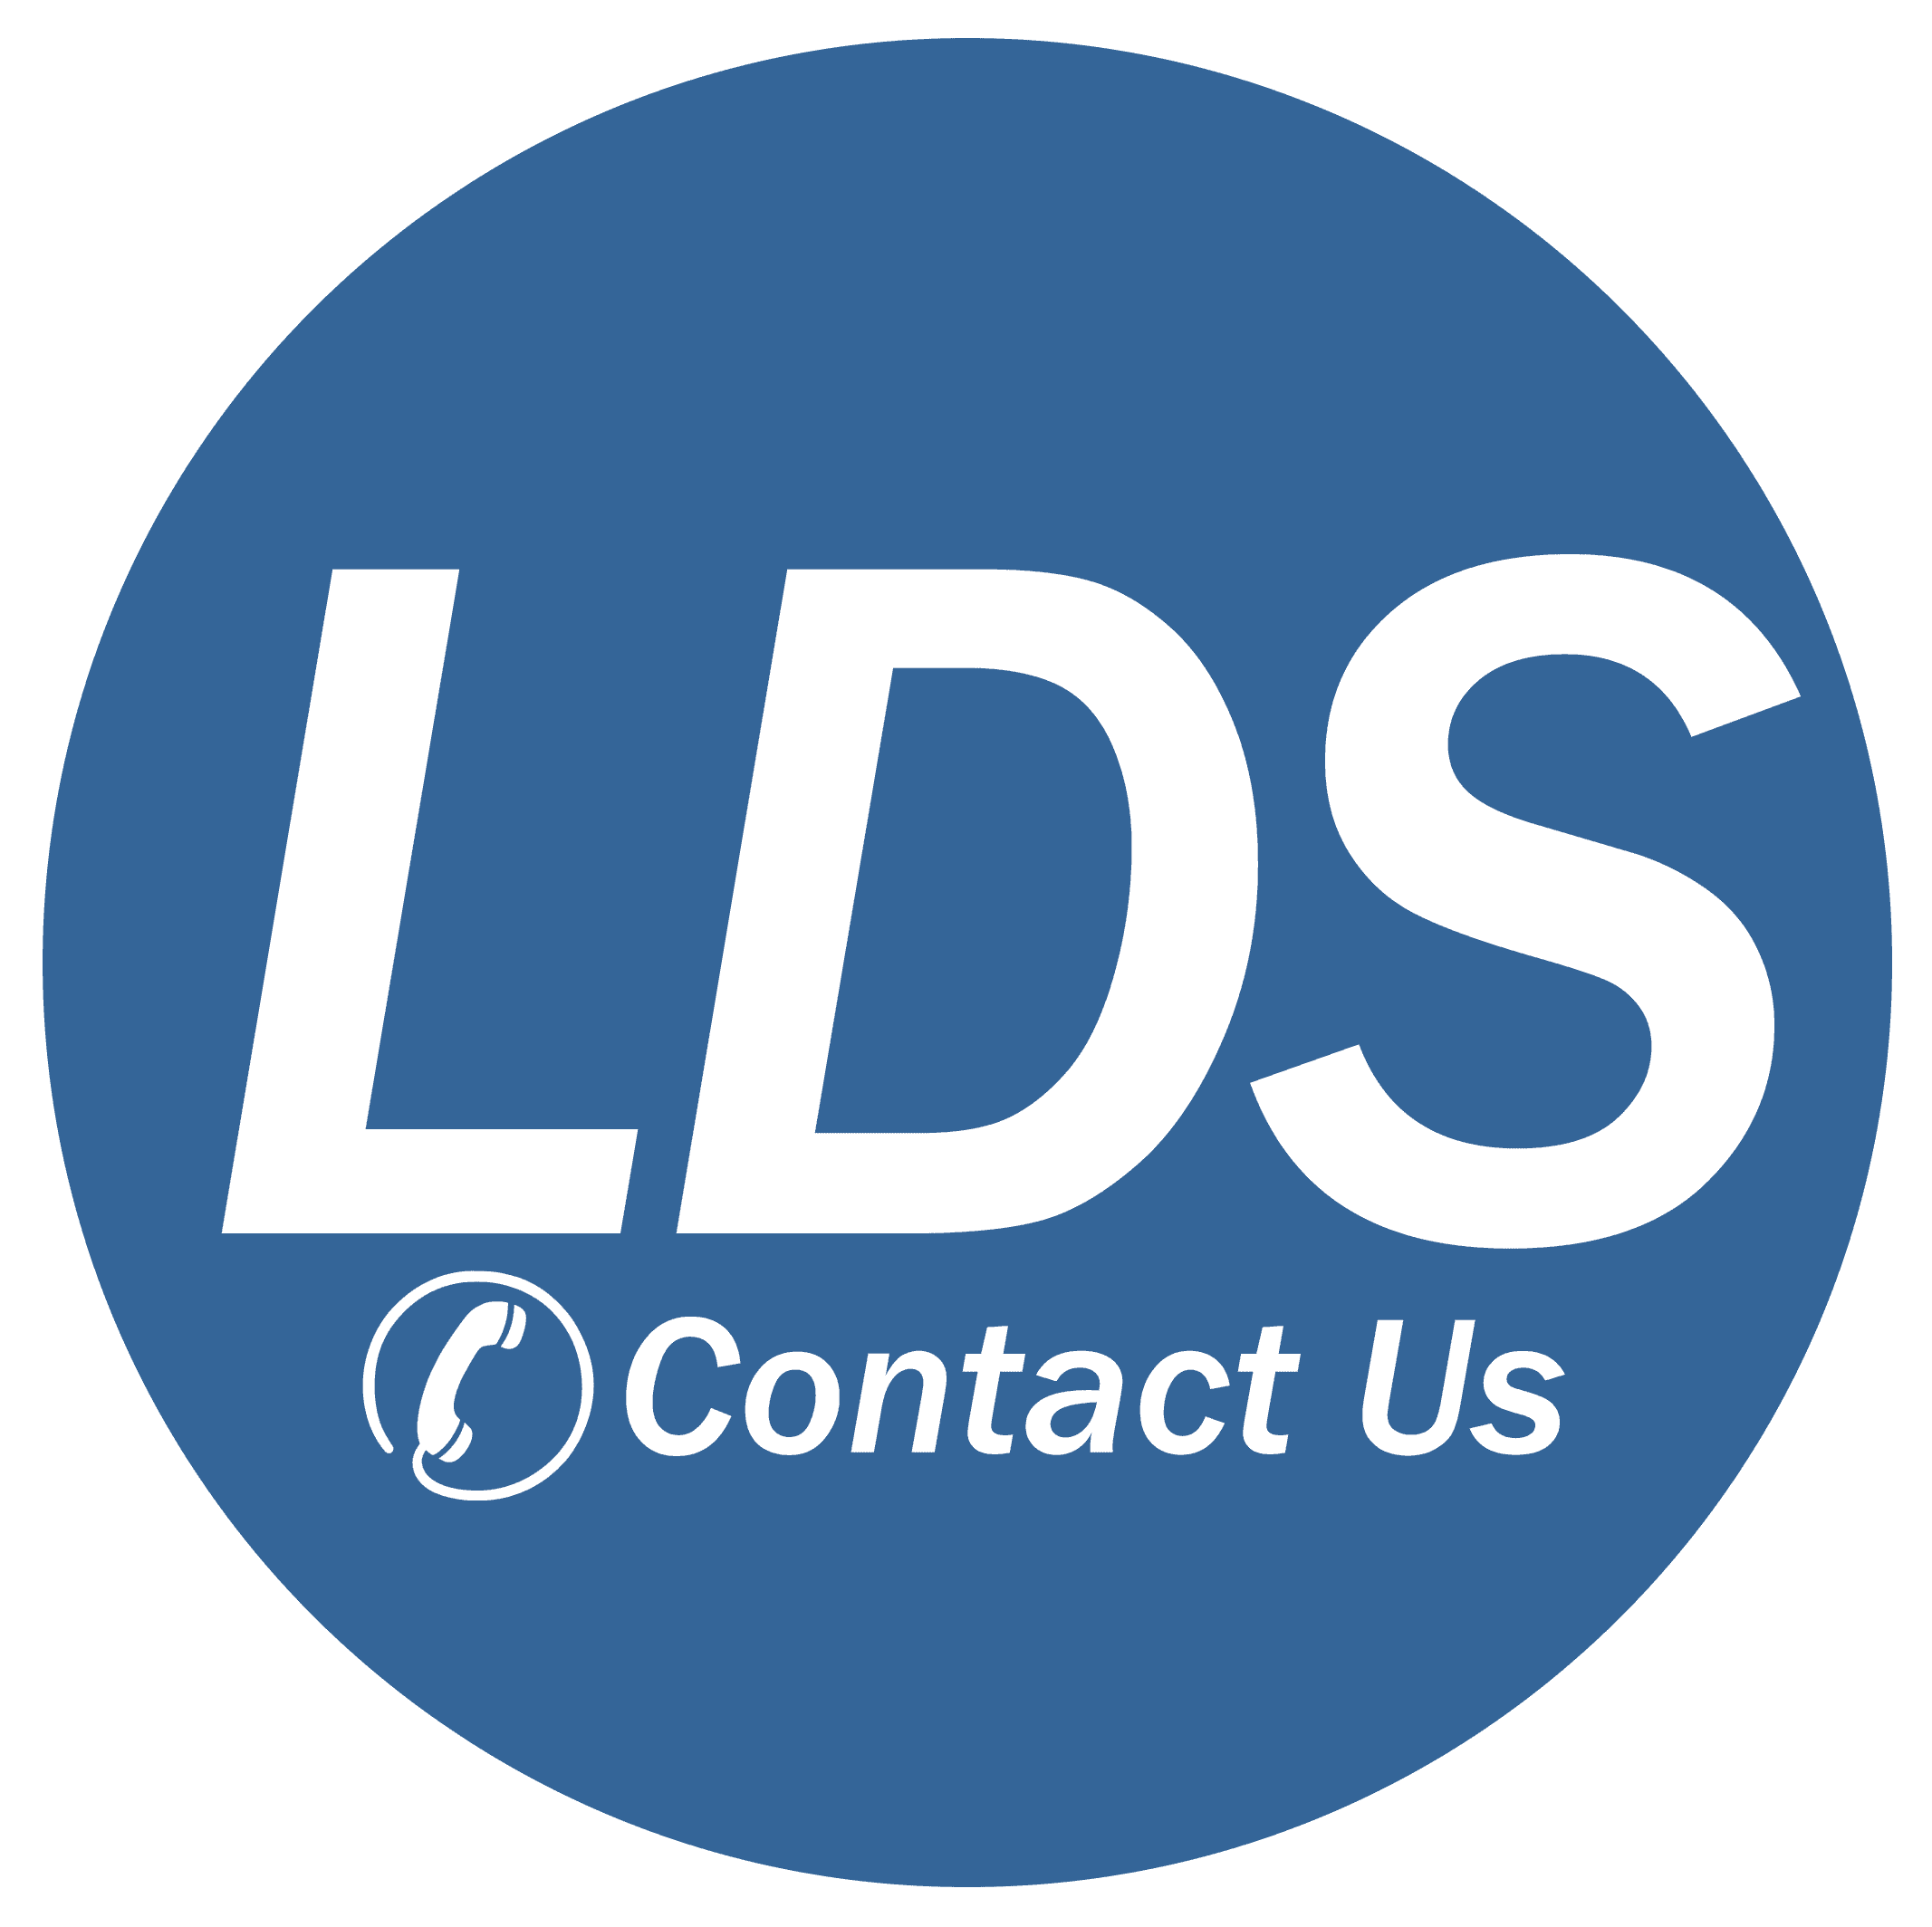 Go to the Contact Us section on the LDS Vacuum Shopper